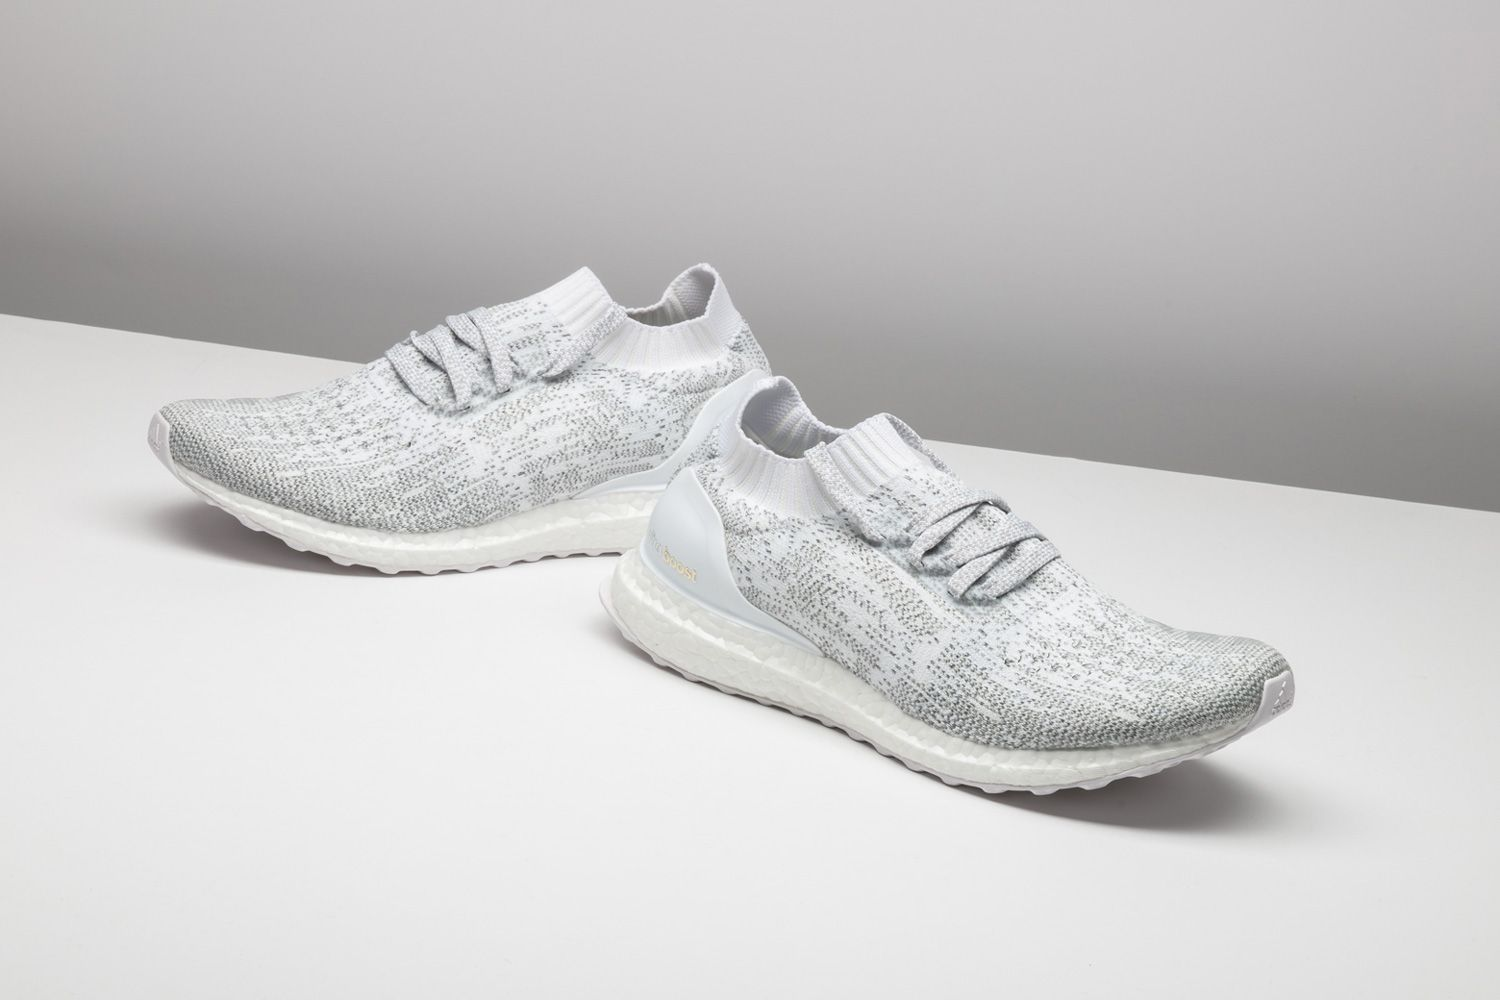 6ec489a56 UltraBoost Uncaged LTD